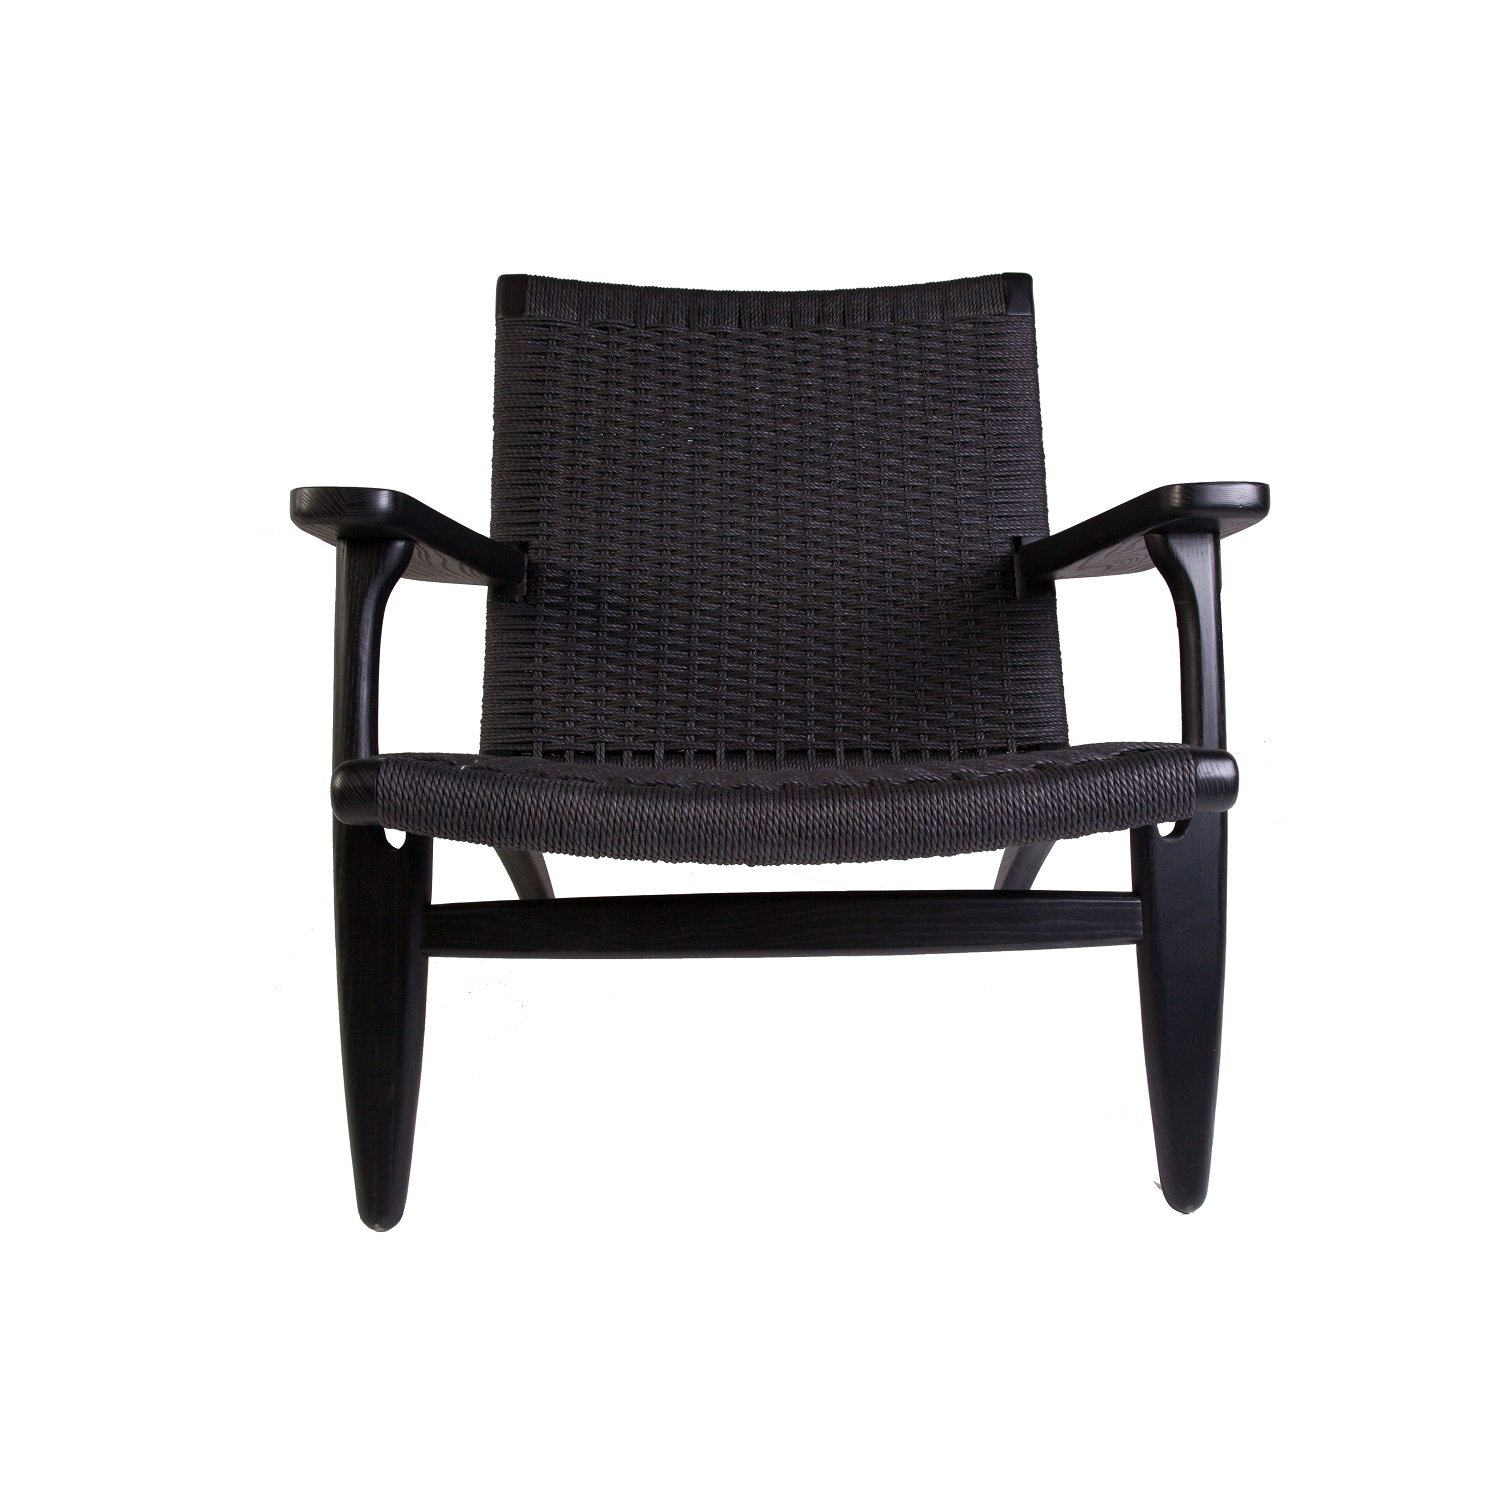 Stilnovo The Sungar Arm Chair, FRC086BLKBLK, Black